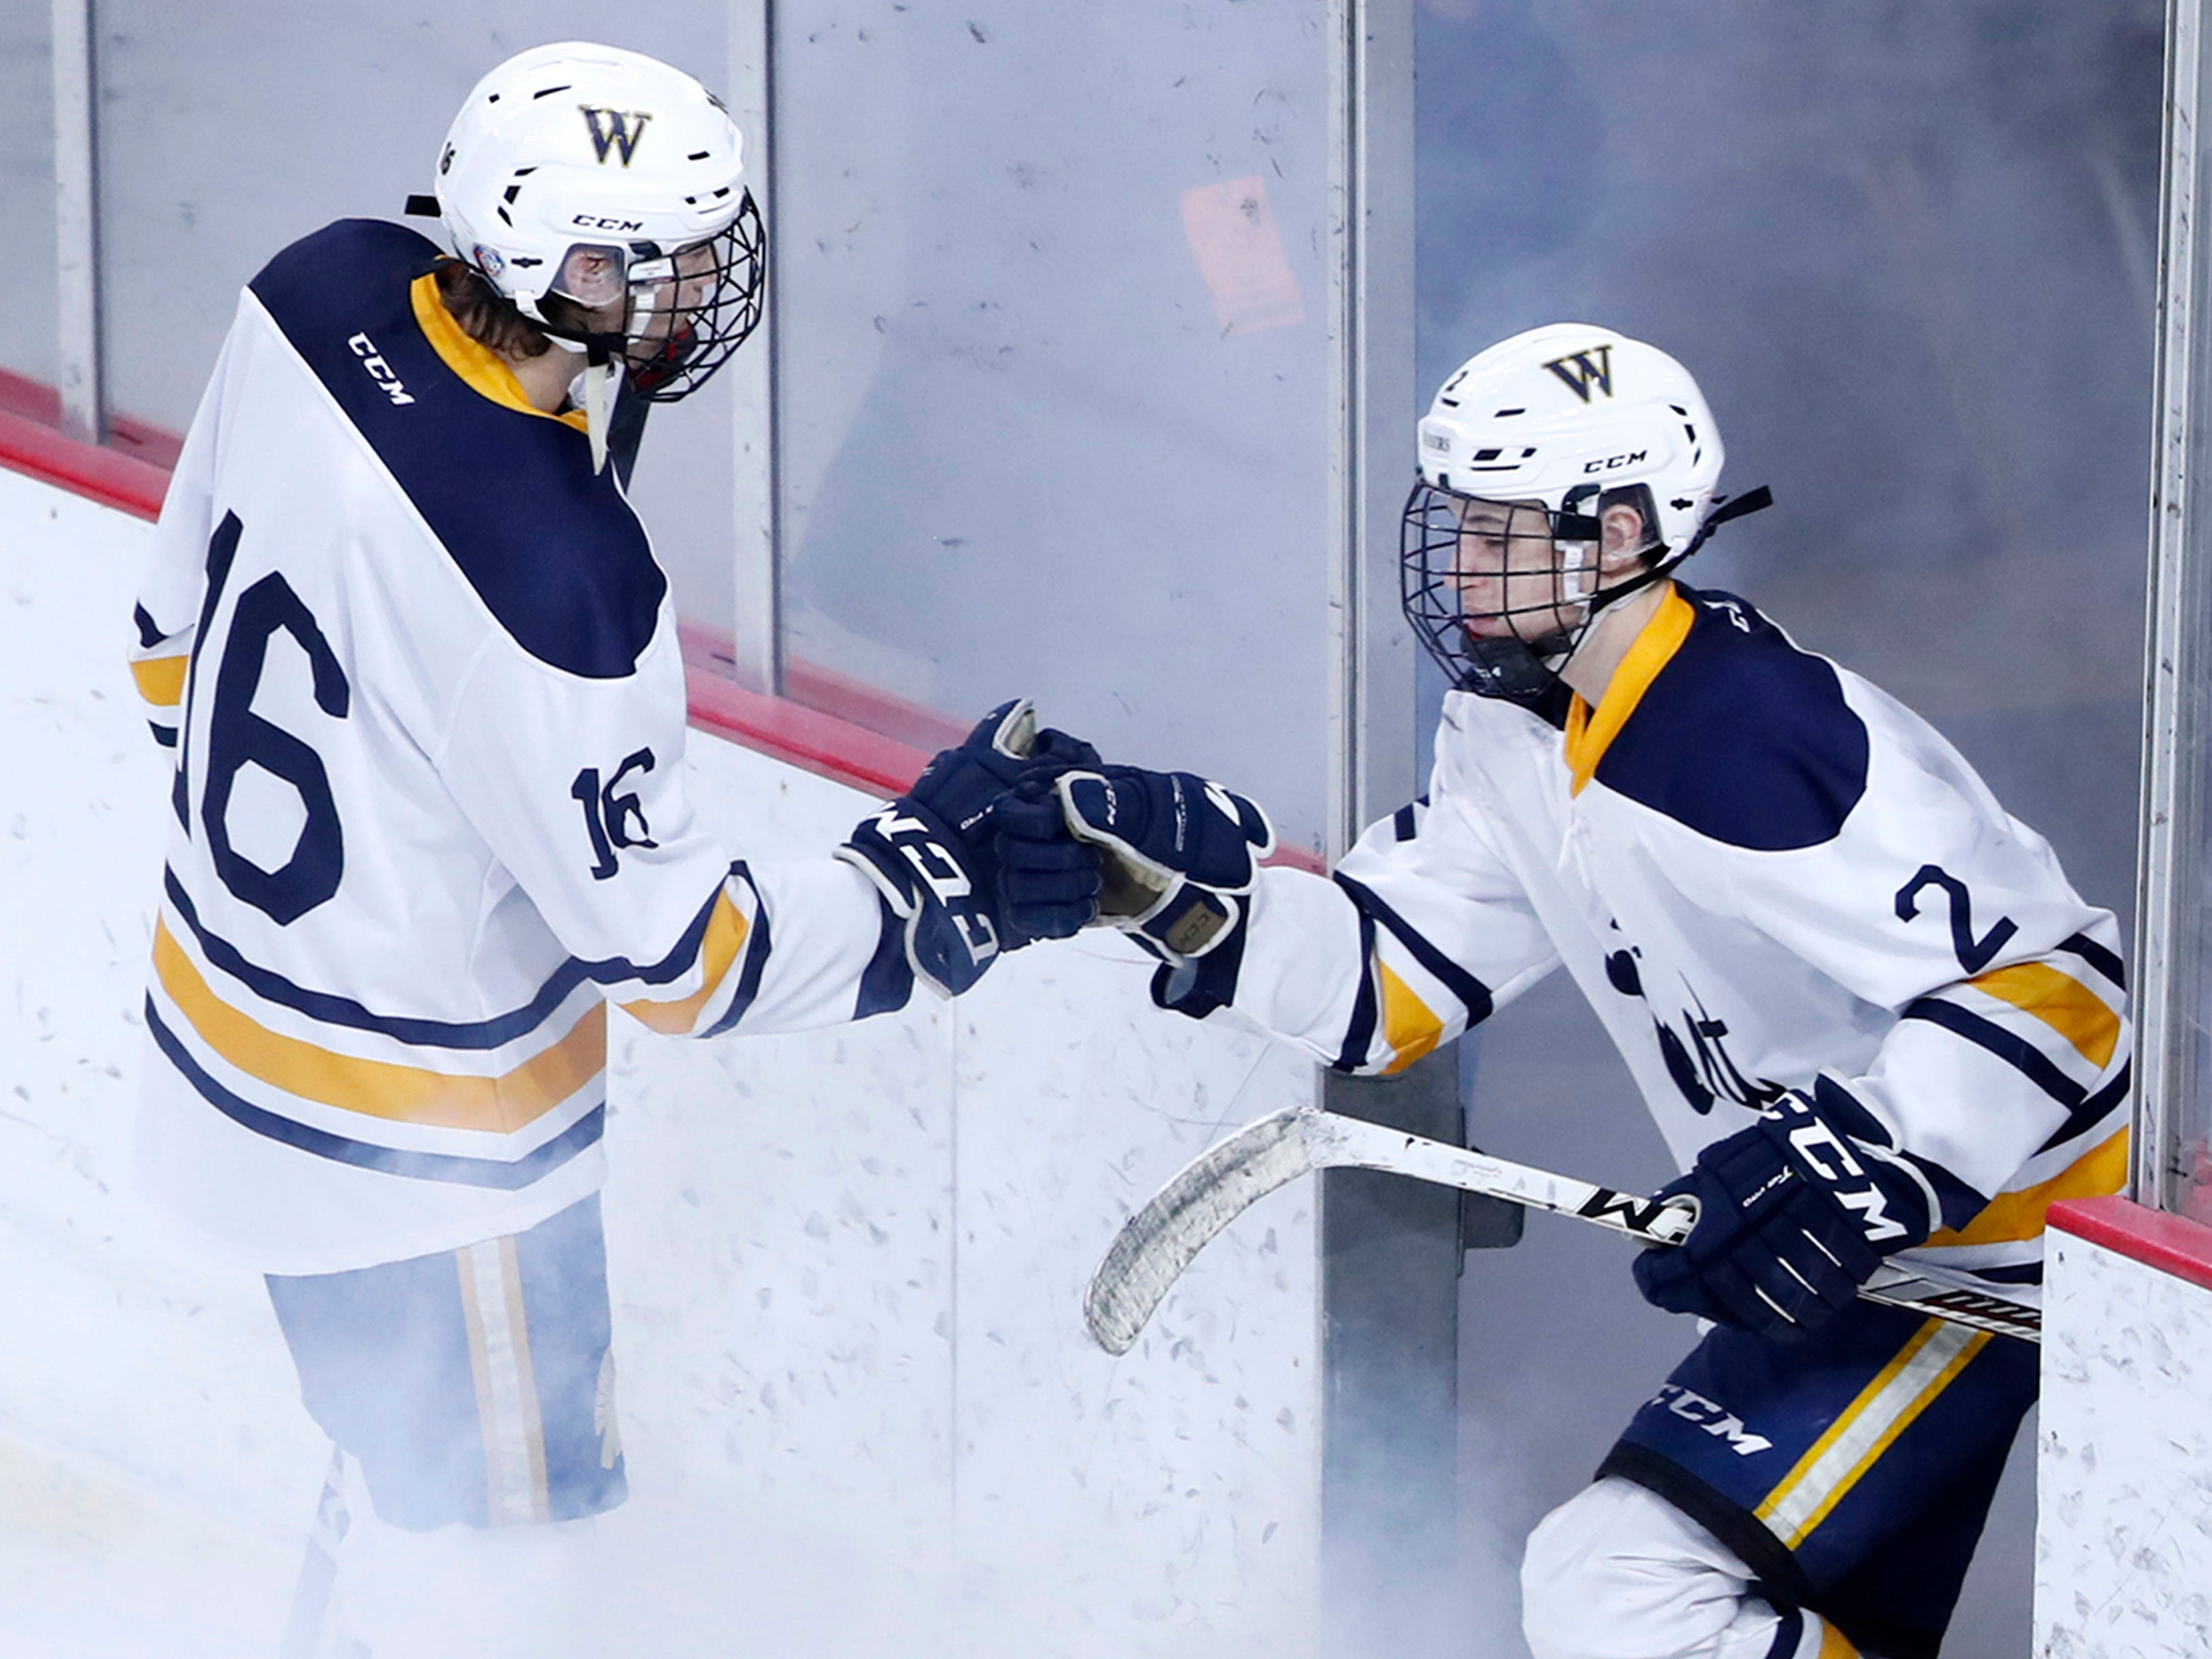 Wausau West's Dayne Hagedorn greets Cade Gruber as he takes to the ice before their WIAA State Hockey Tournament quarterfinal game against Waukesha North Co-op Thursday, Feb. 28, 2019, at Veterans Memorial Coliseum in Madison, Wis.